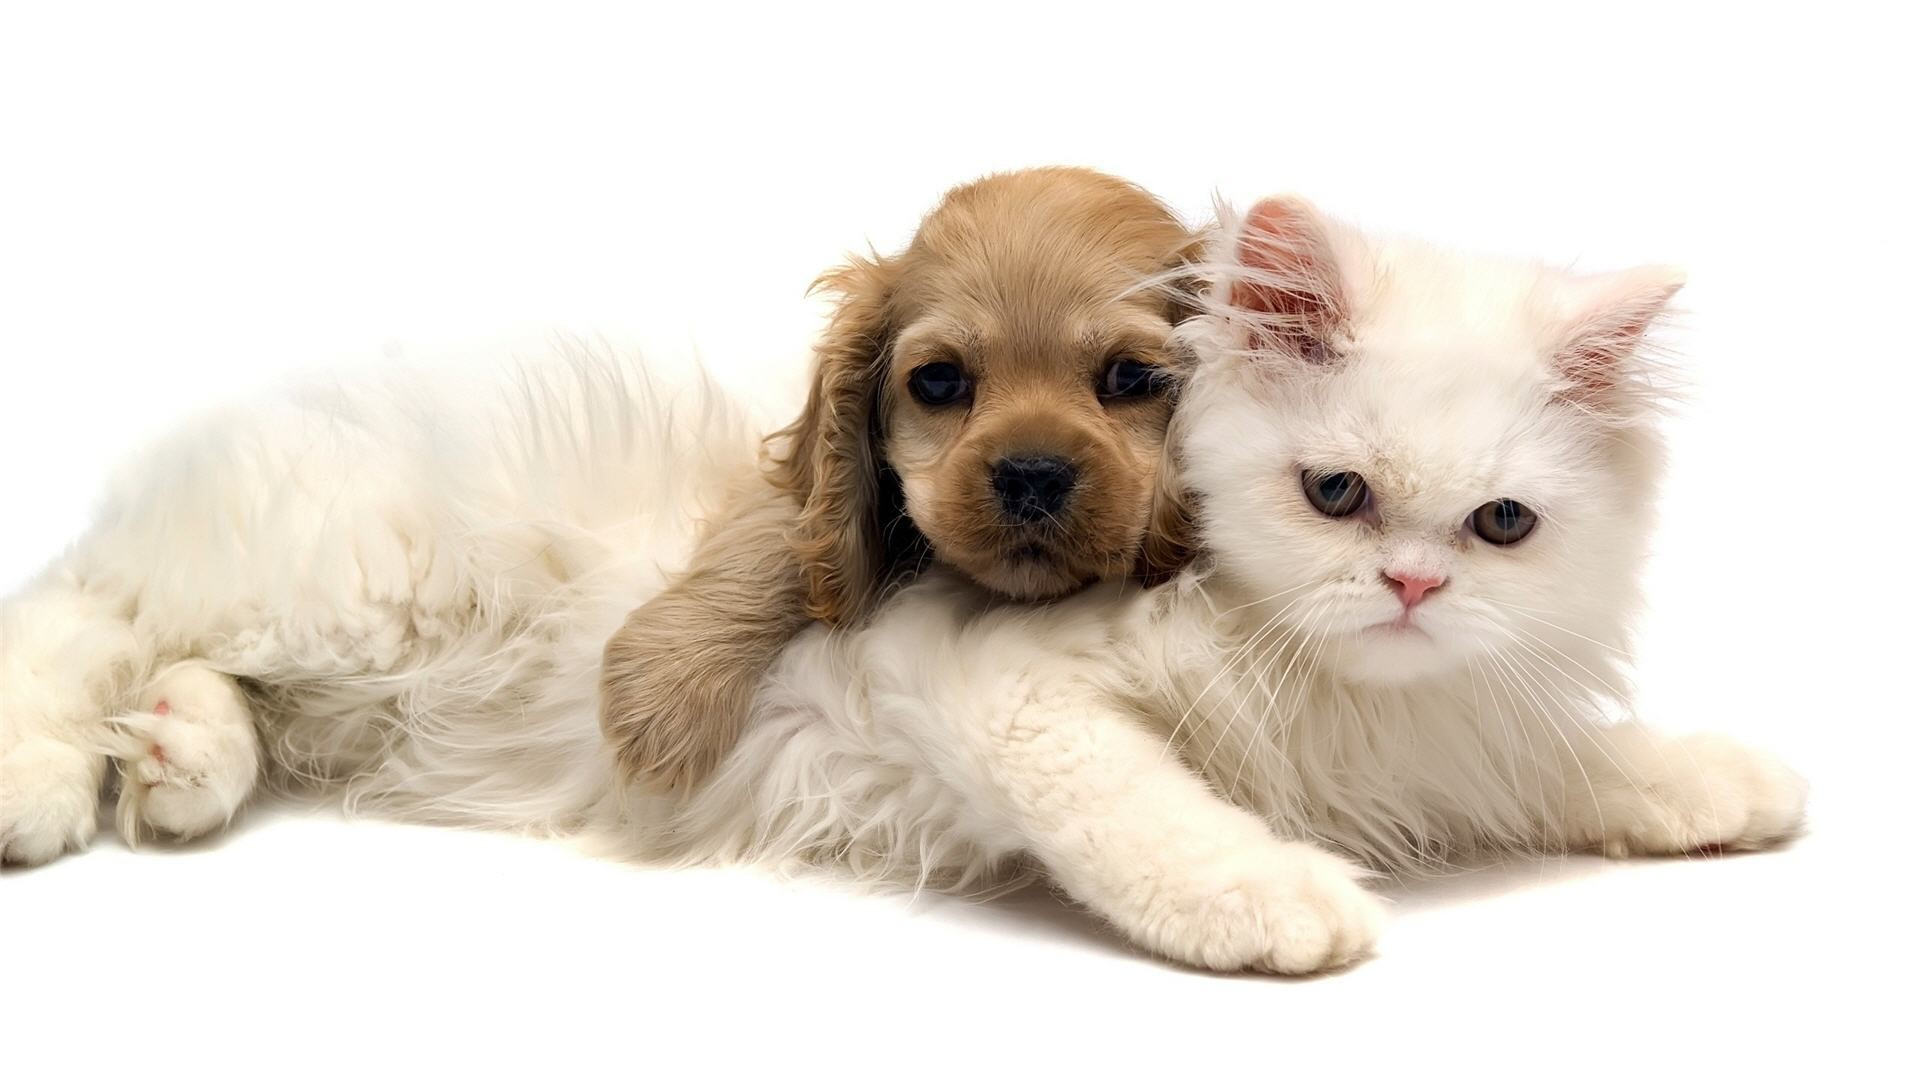 Dog and Cat Wallpaper 53 images